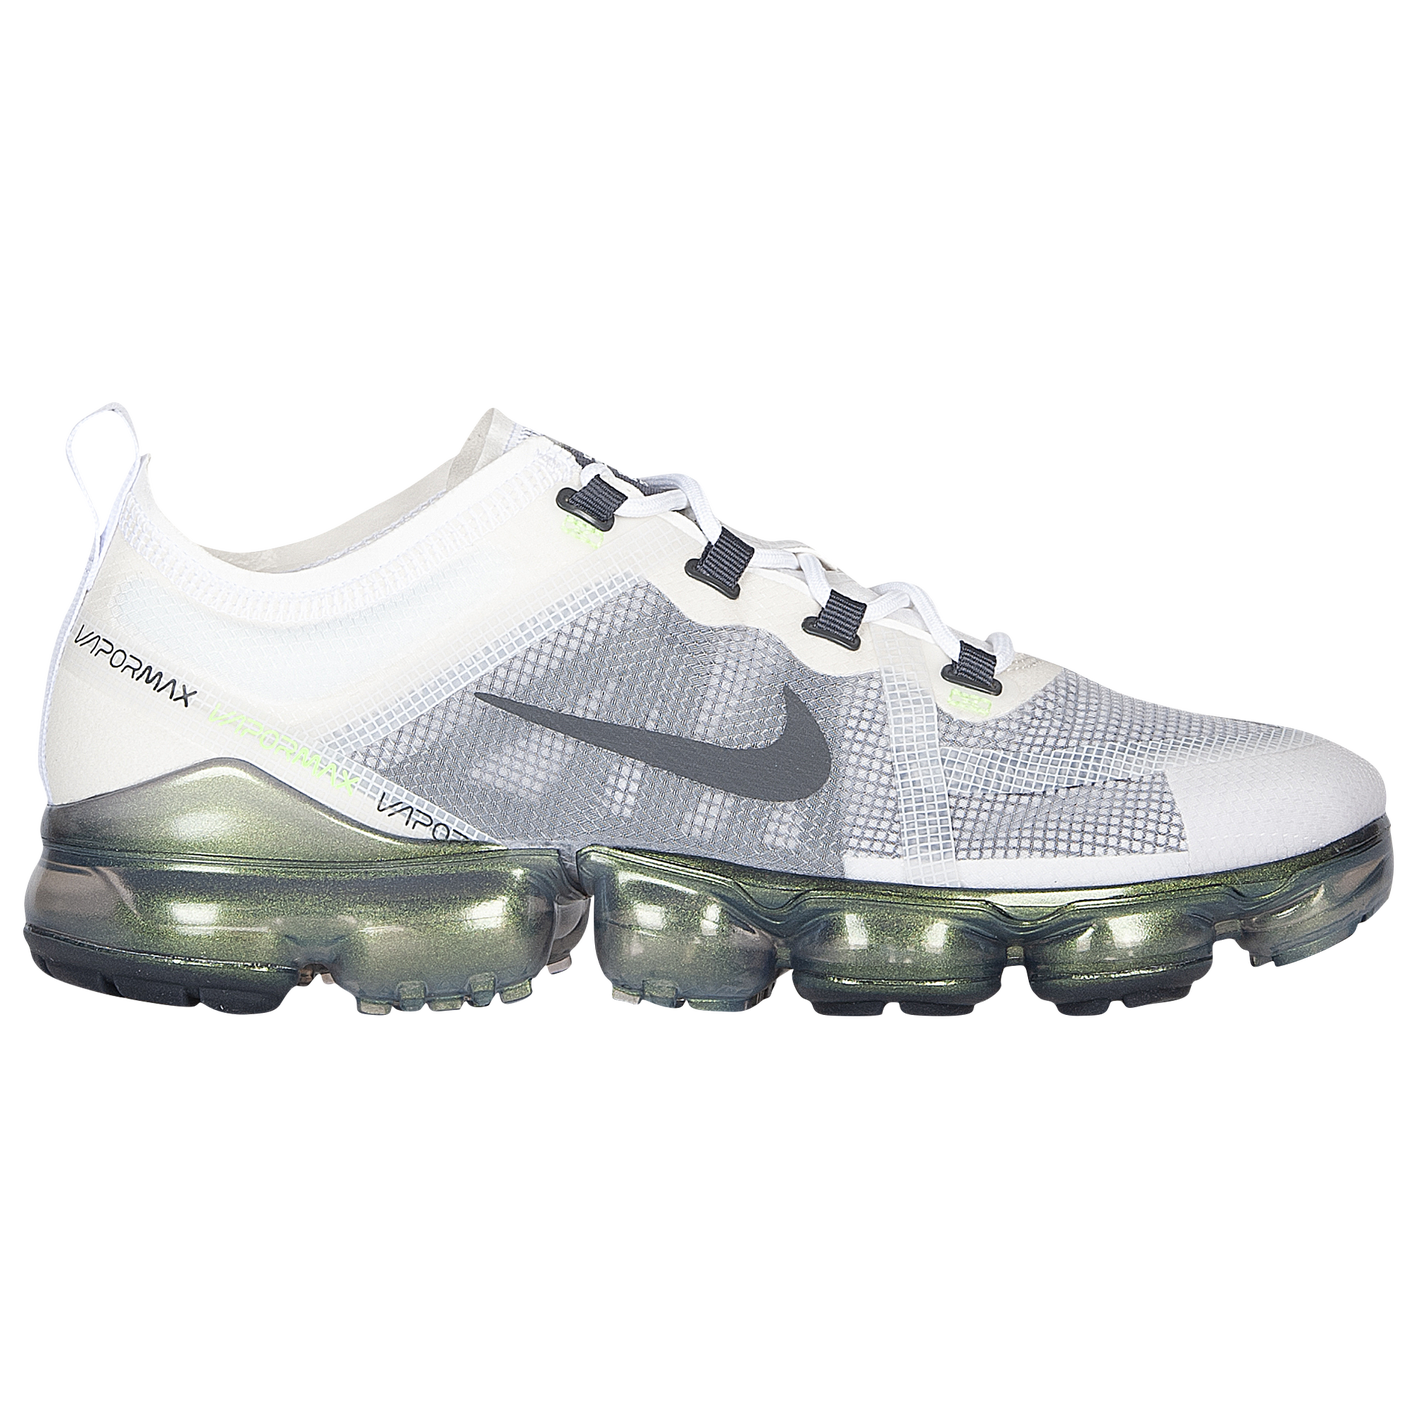 best sneakers e30c5 aea52 Nike Air Vapormax 2019 Premium - Men s